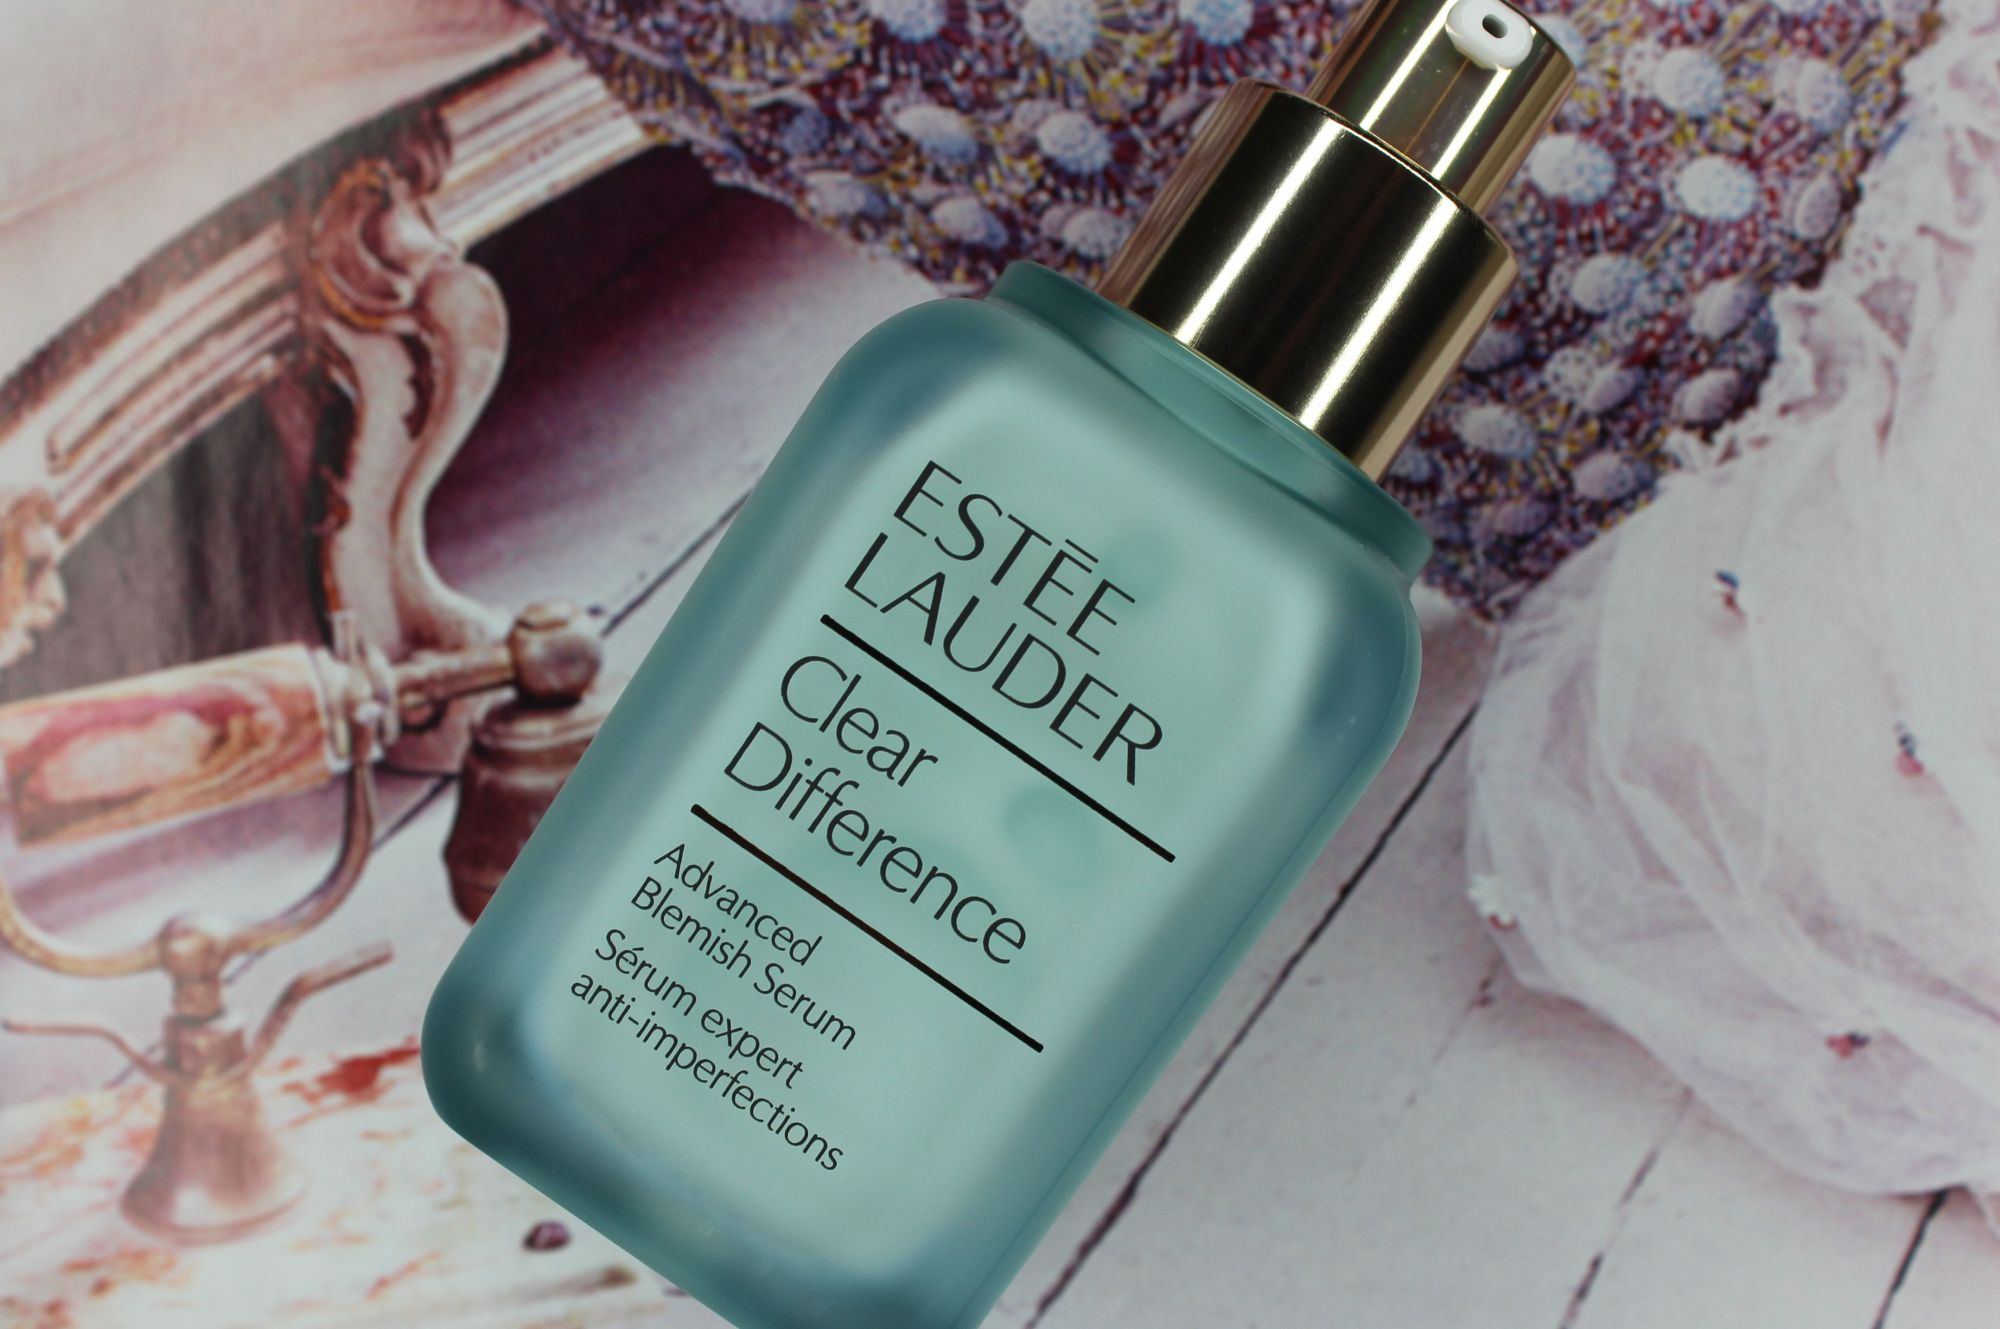 TOP 16 - Estee Lauder Clear Difference Advanced Blemish Serum 1